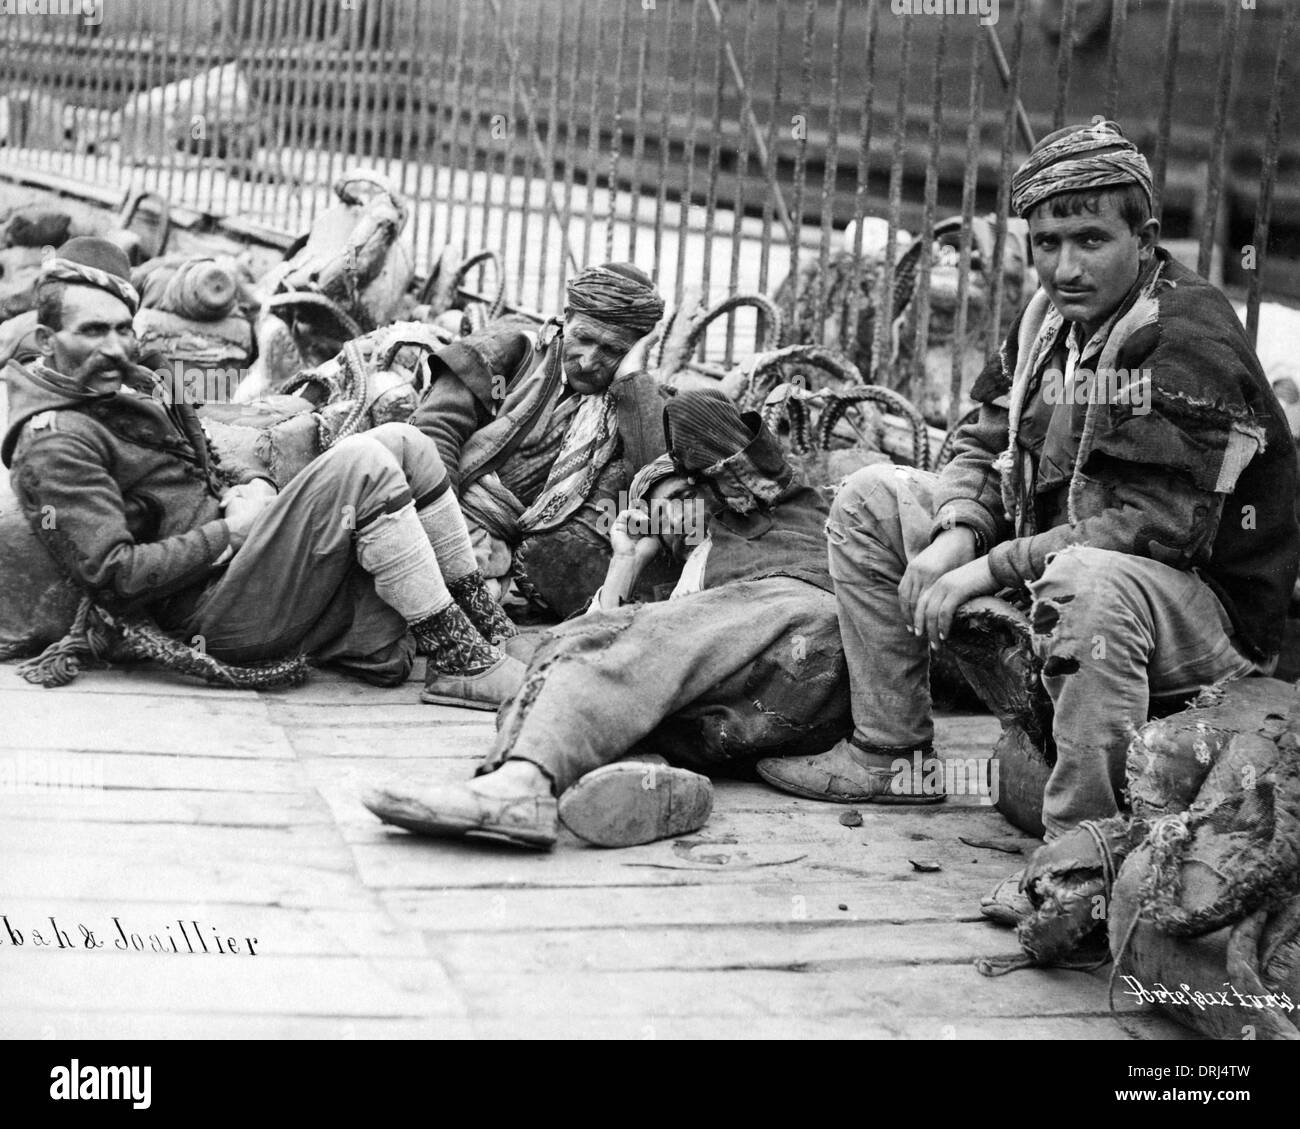 Turkish porters resting, Turkey - Stock Image